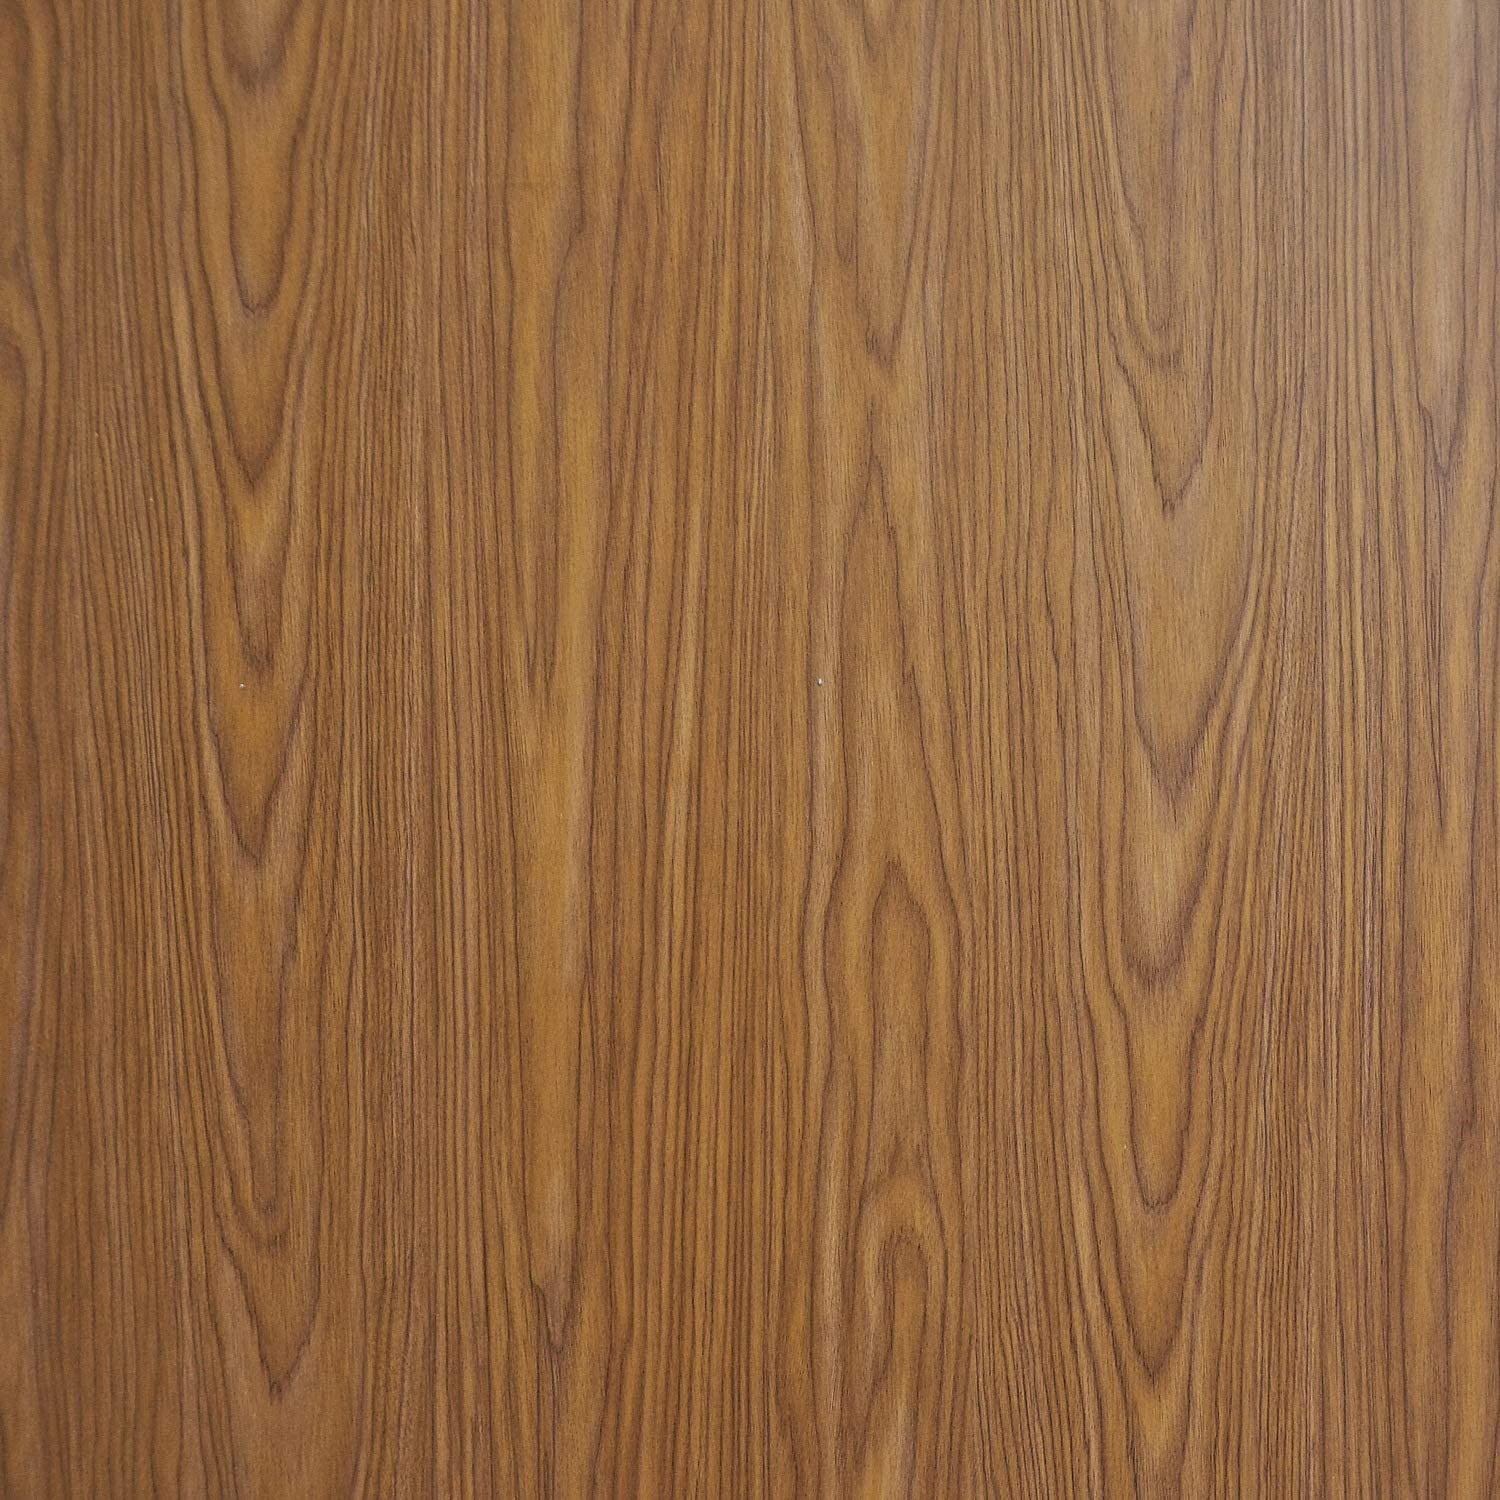 Self-Adhesive Film Middle Brown Wood Contact Paper Wood Grain Shelf//Drawer Line